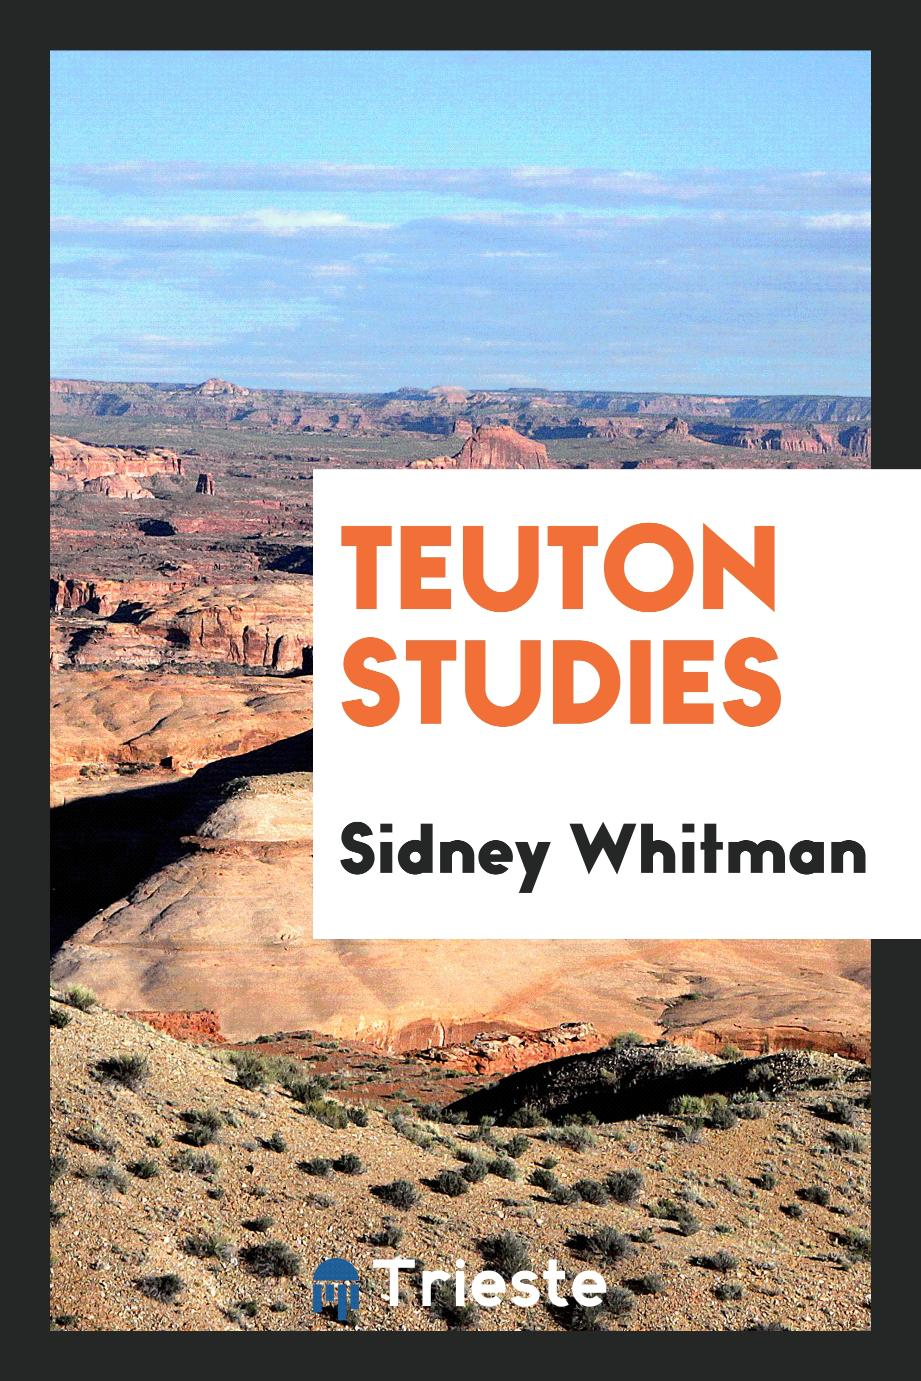 Sidney Whitman - Teuton studies